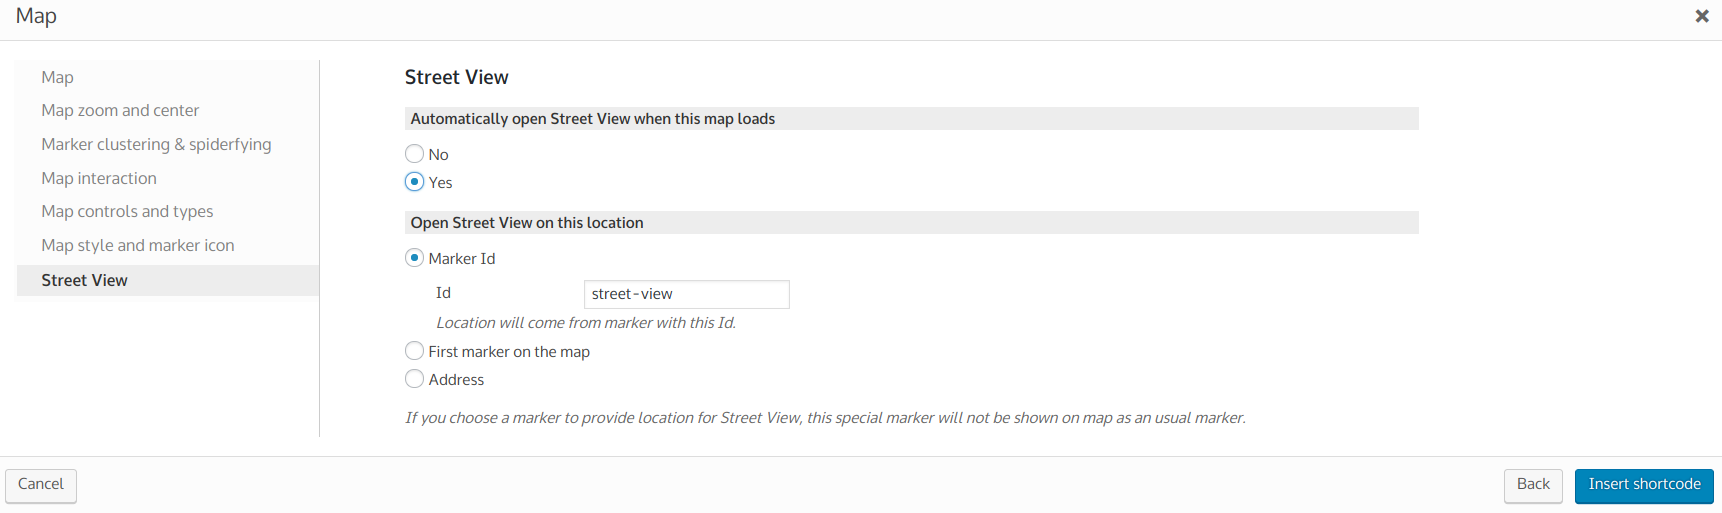 Toolset Maps 1 5 with Azure Maps, Google Street View, and